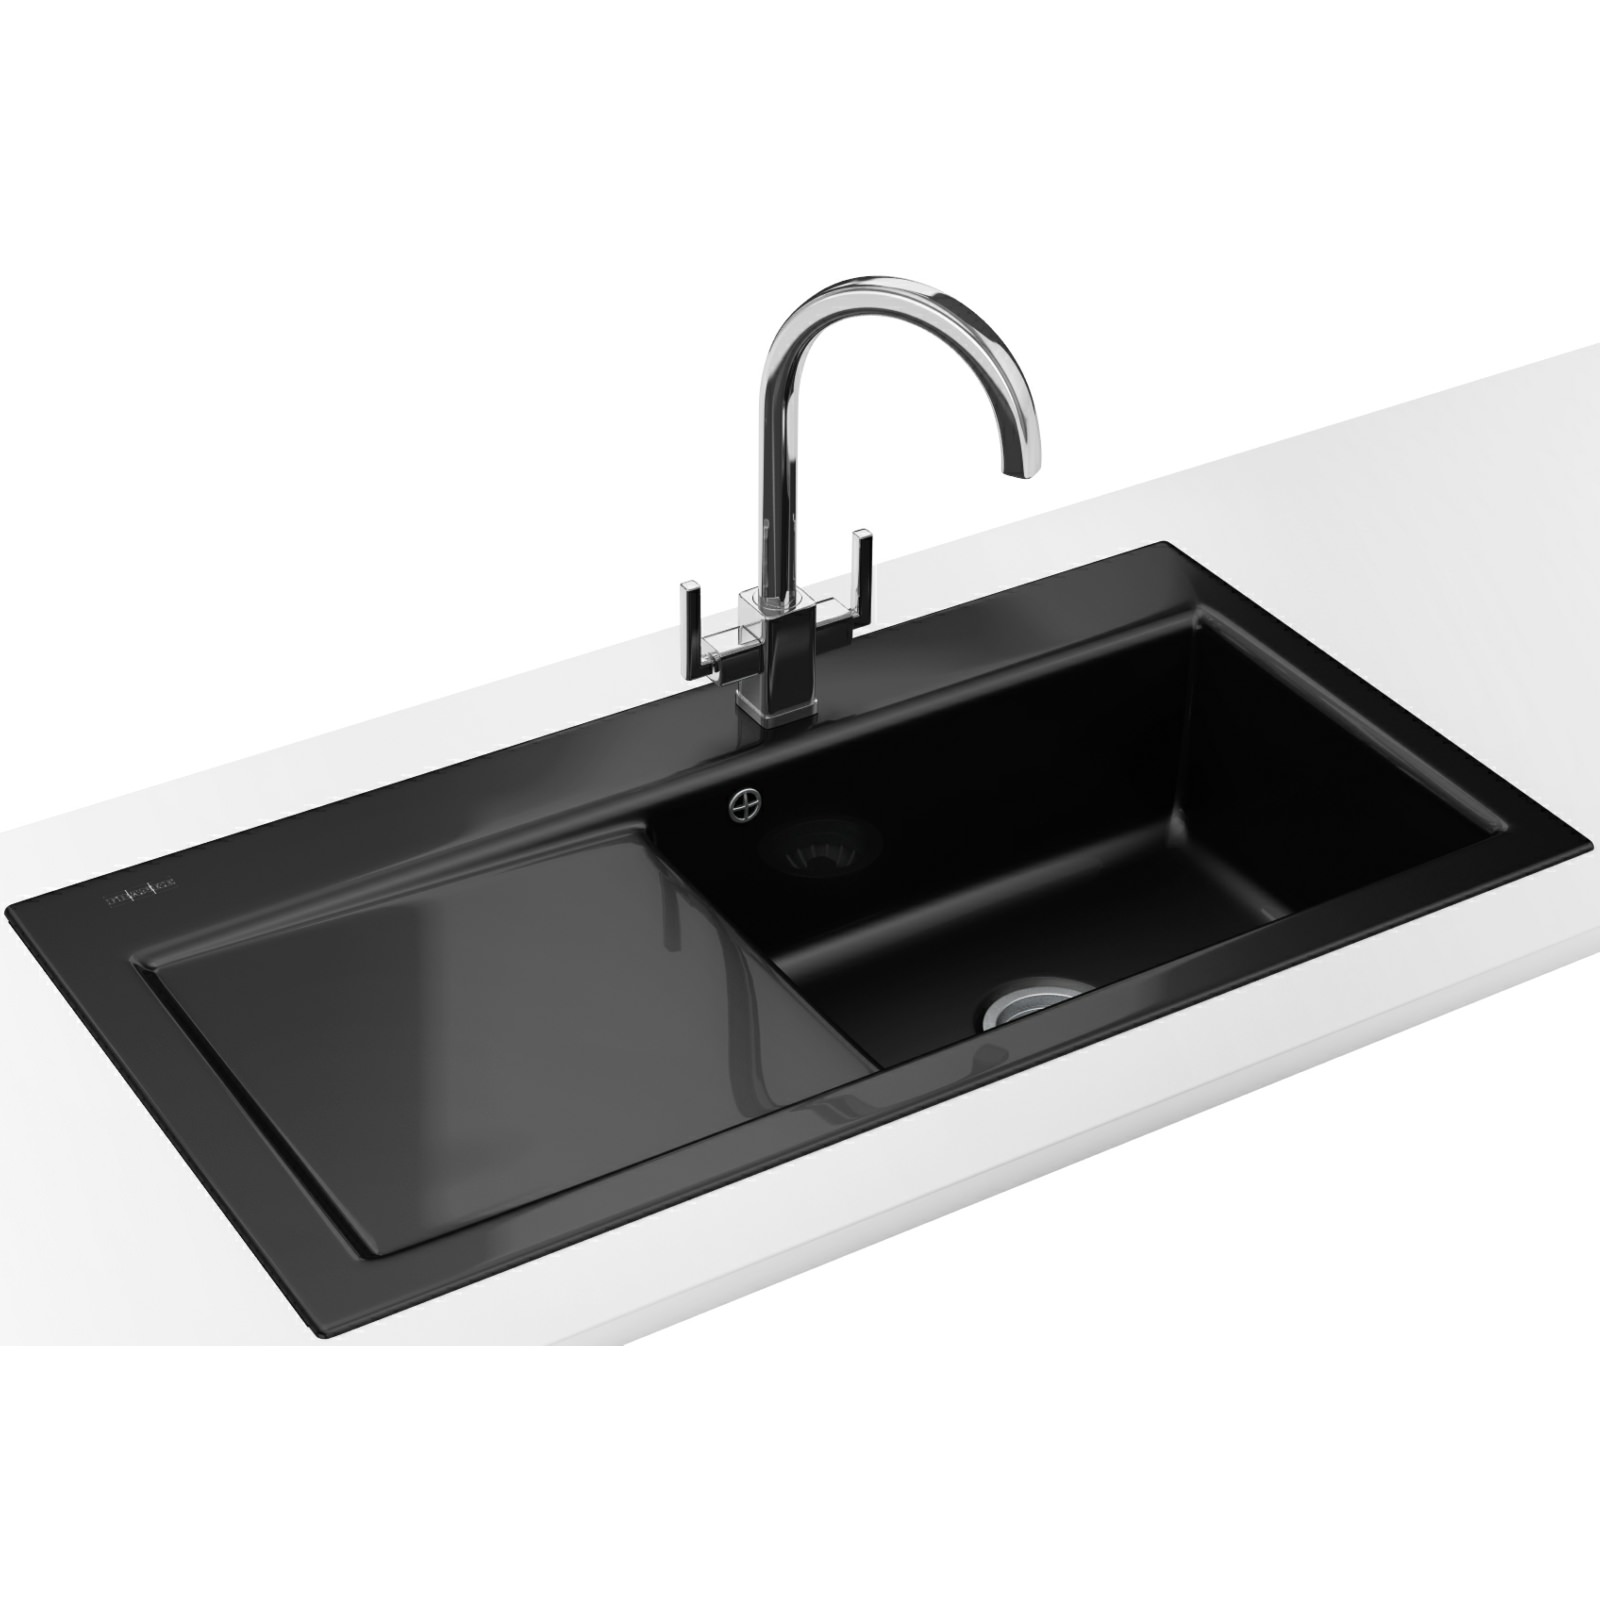 Large Ceramic Kitchen Sink